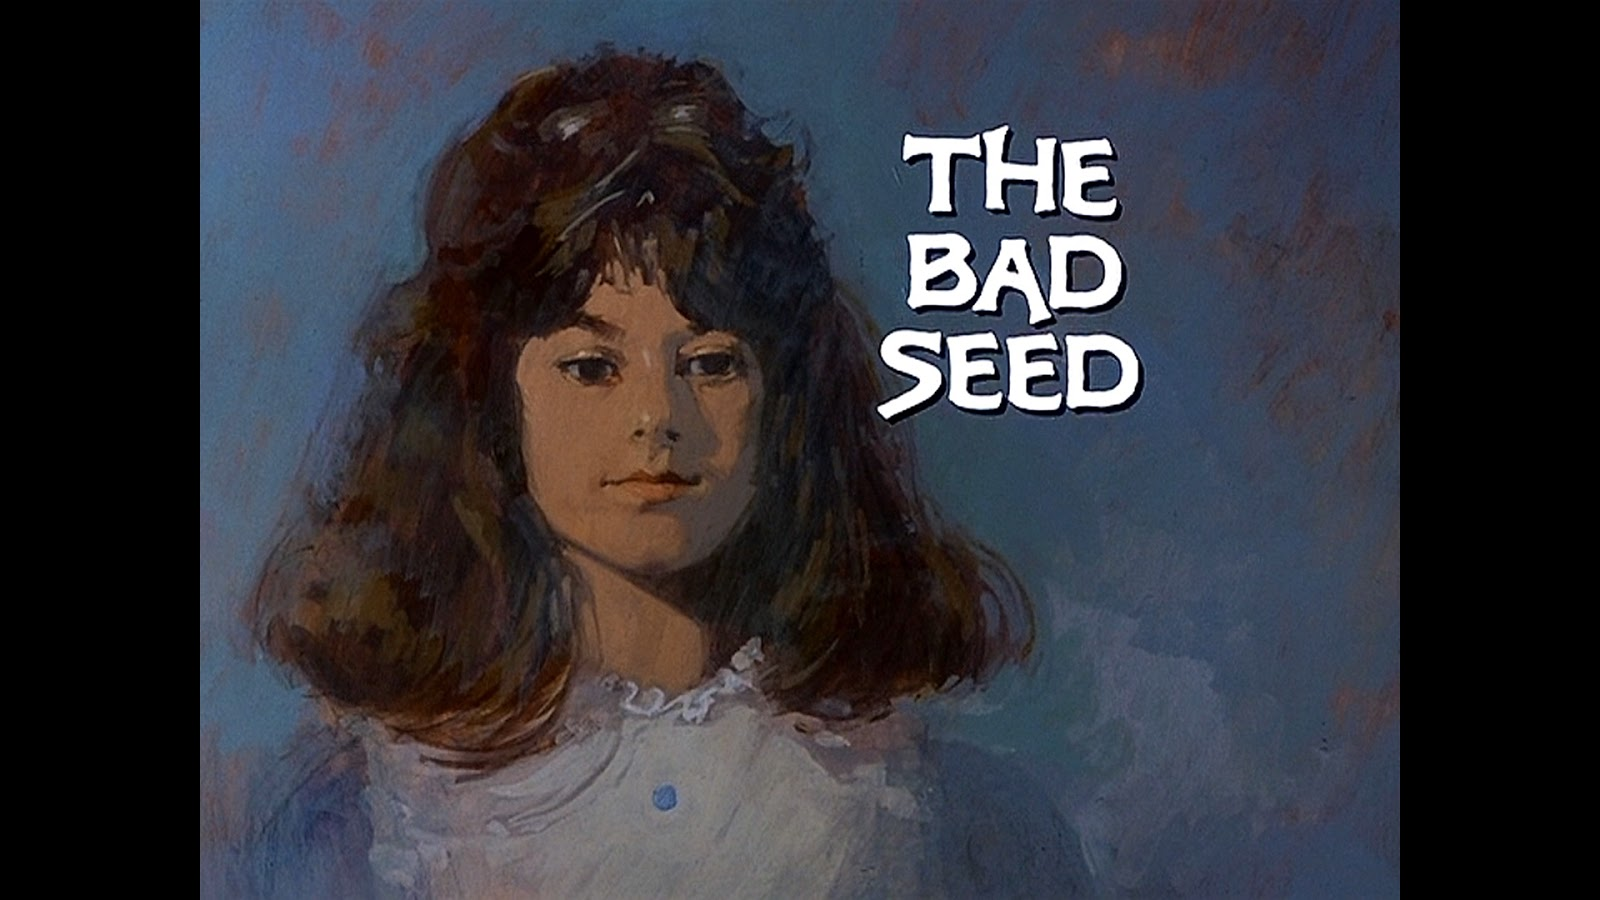 Movie Locations and More: Bad Seed (1985)